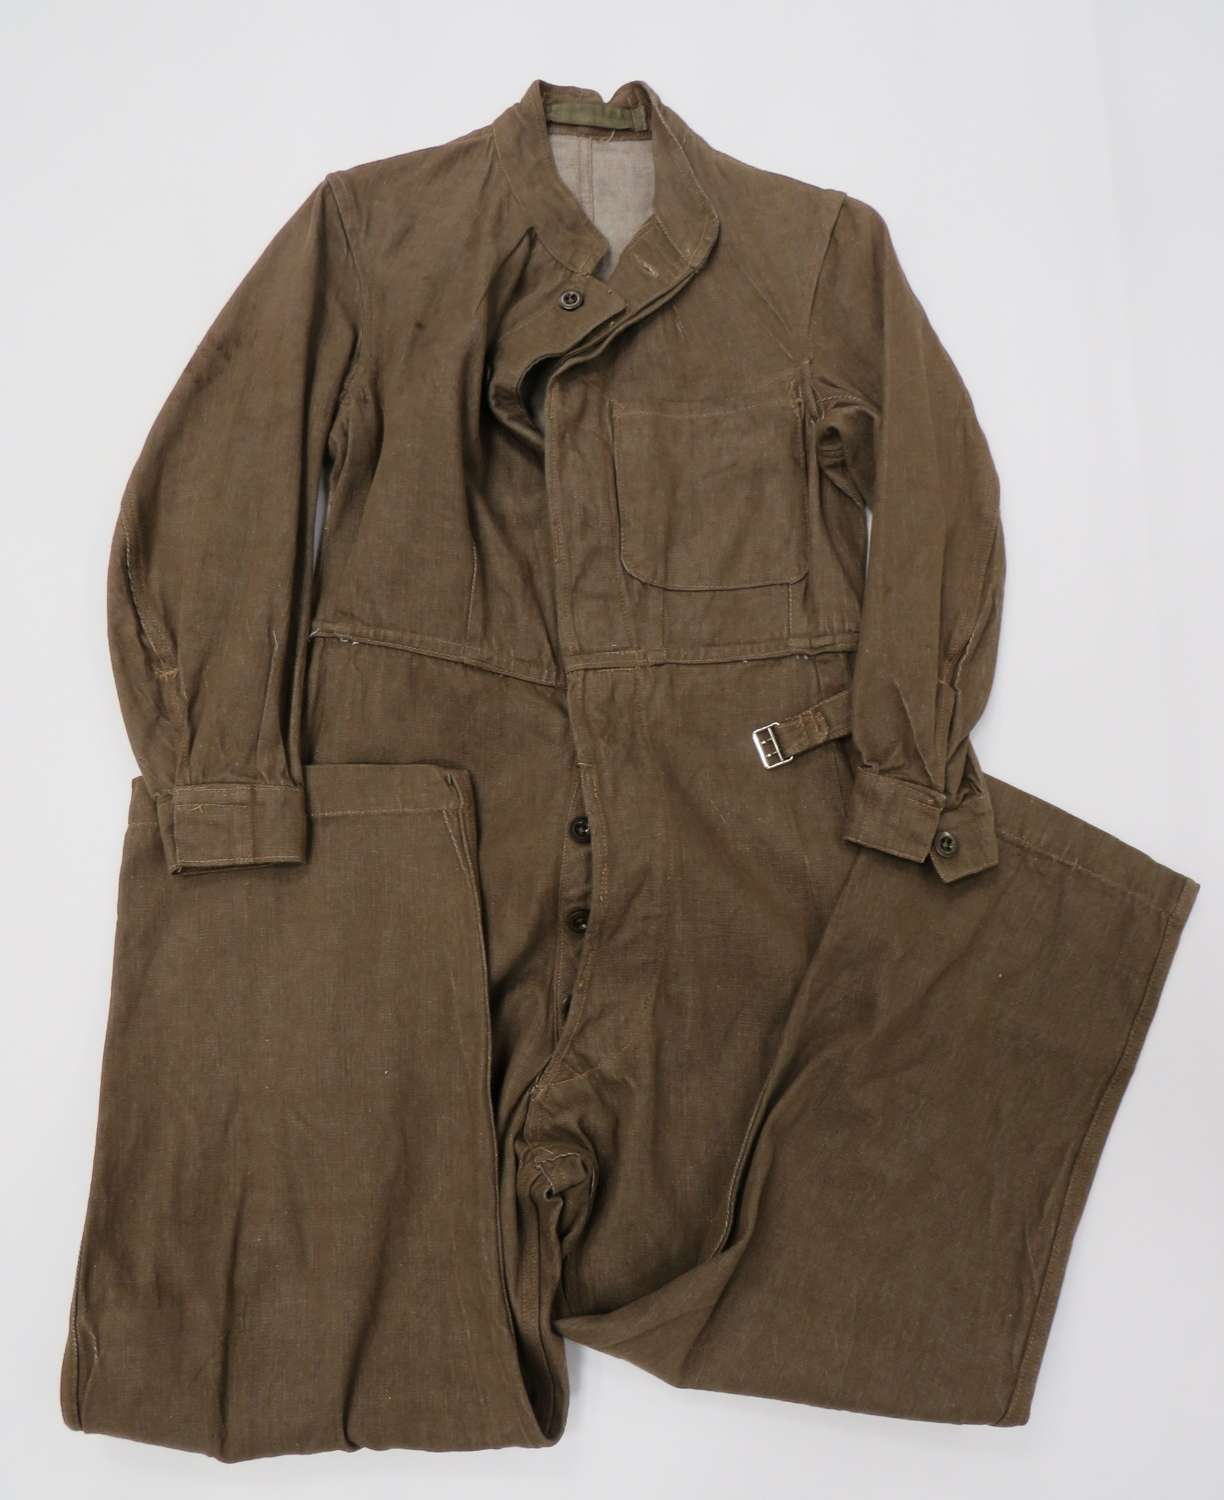 WW2 Issue A.T.S Working Overalls